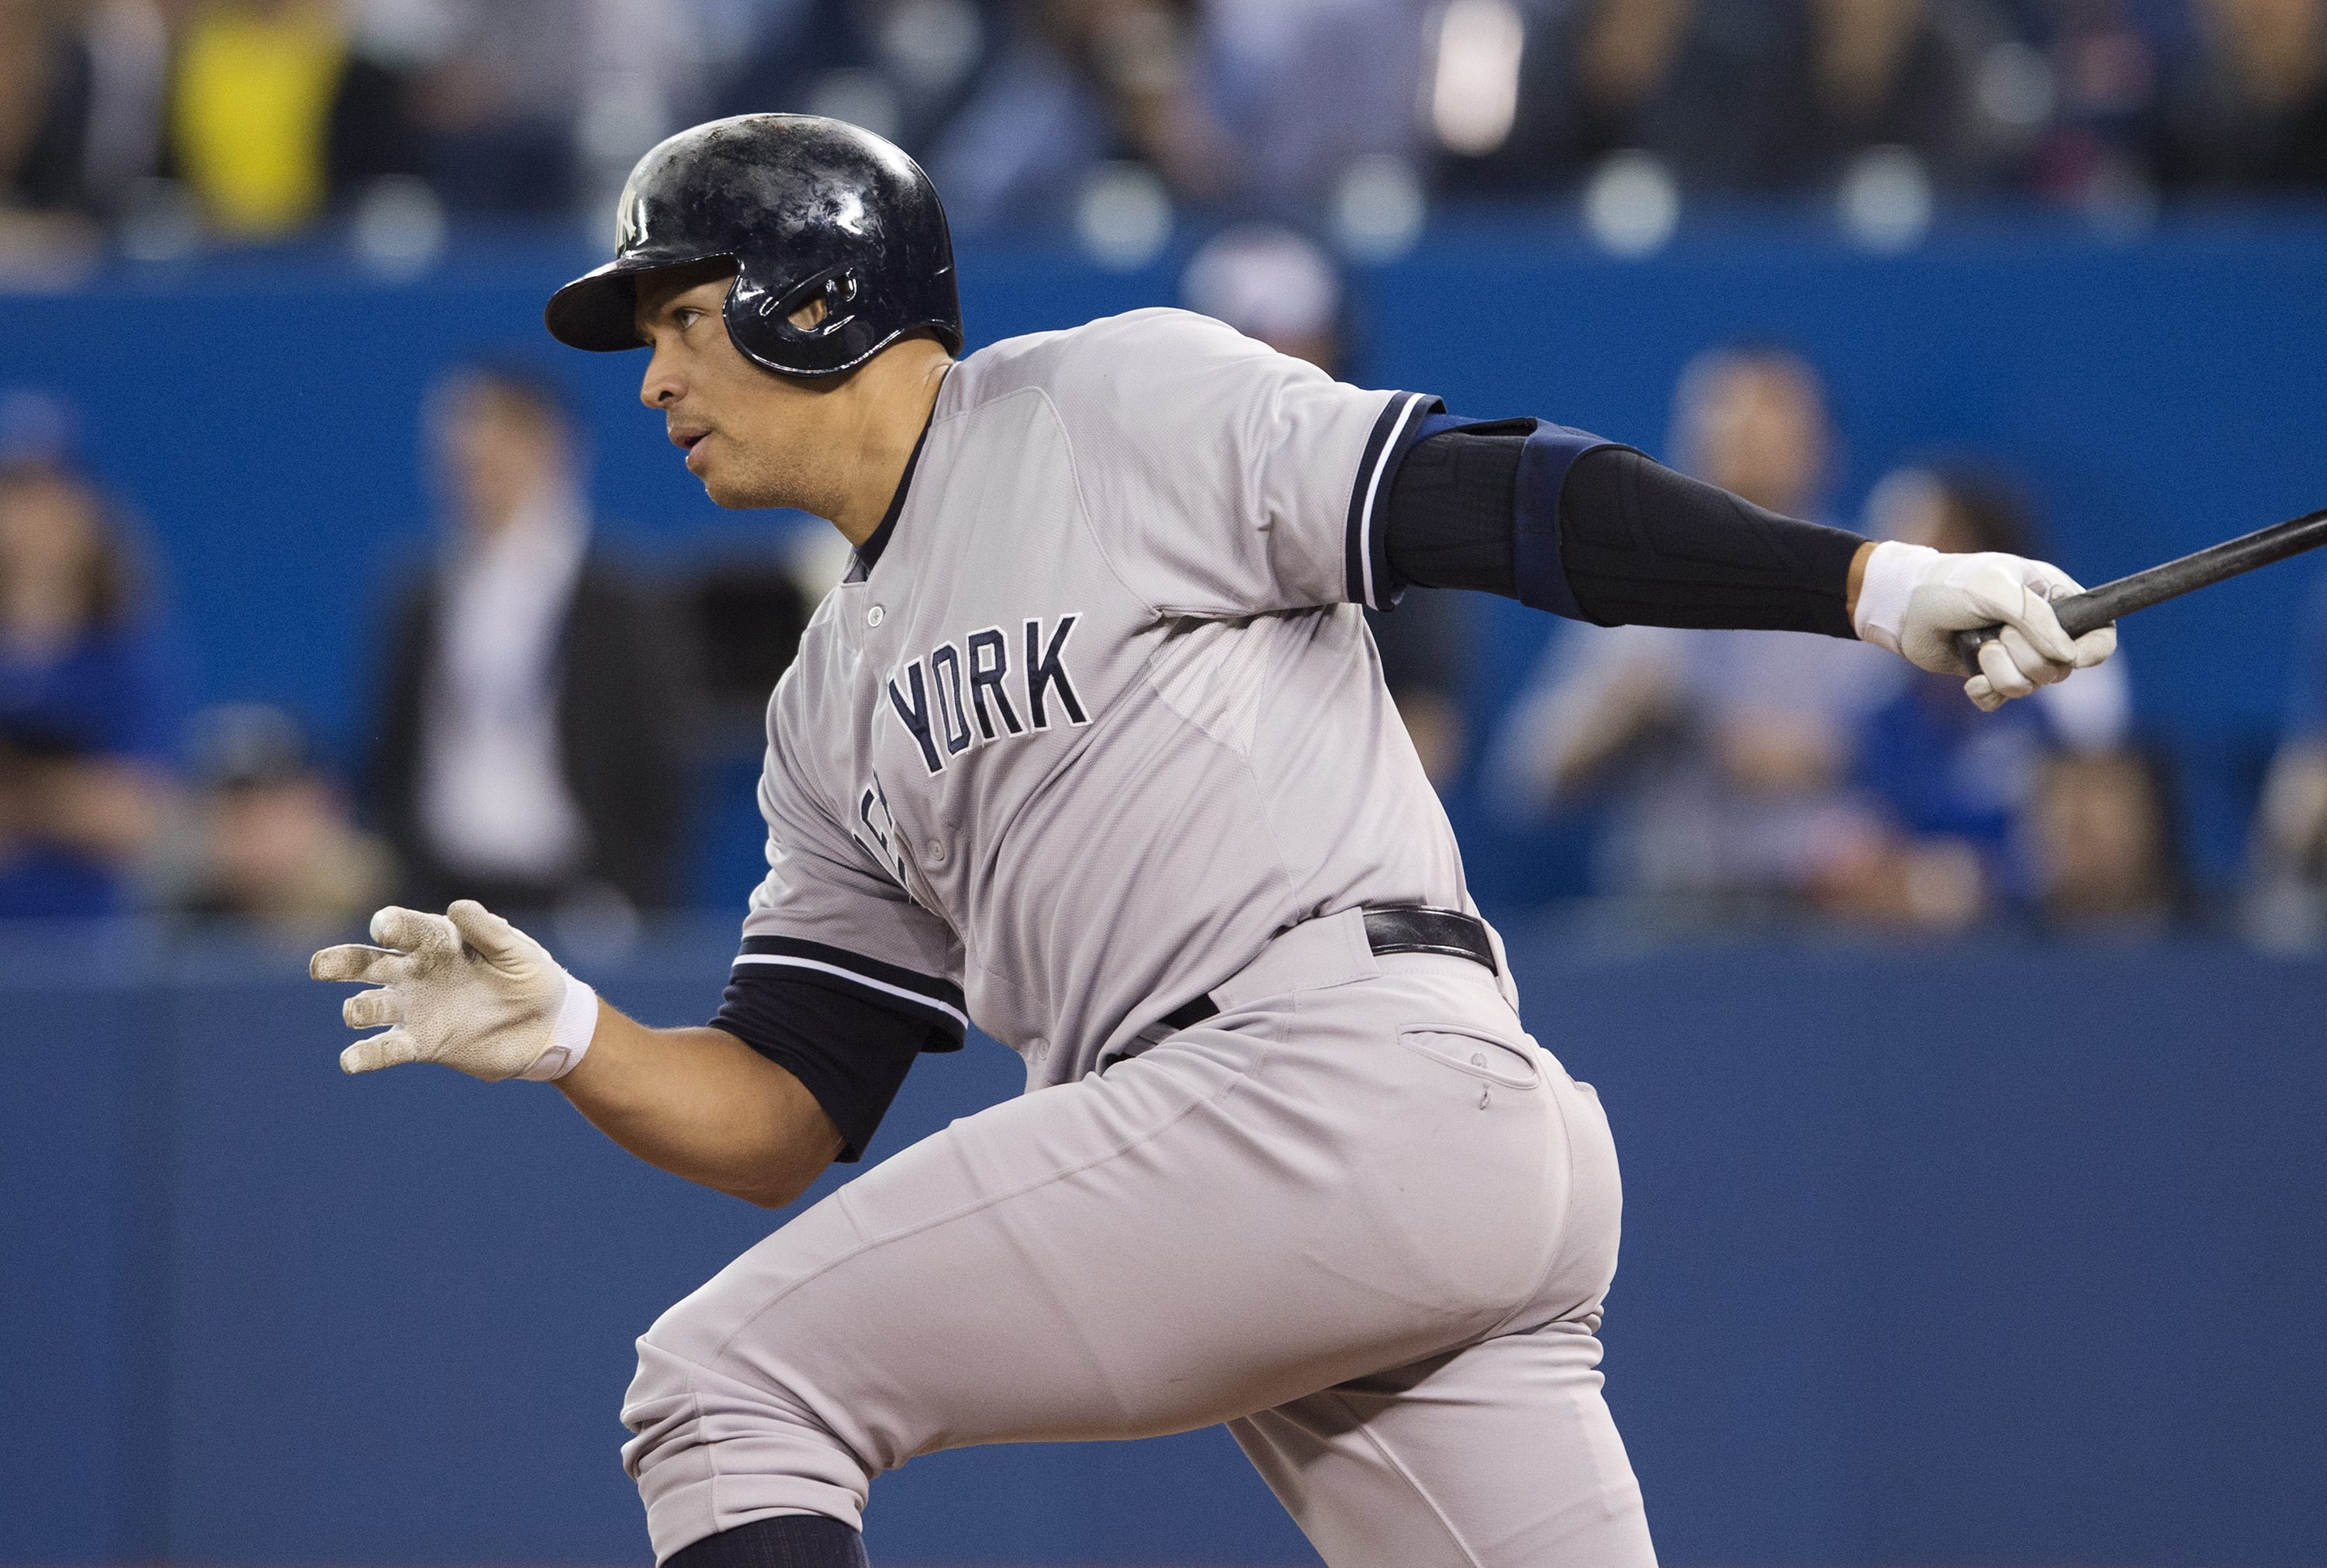 New York Yankees' Alex Rodriguez grounds out during first inning MLB baseball action against the Toronto Blue Jays in Toronto on Monday, May 4, 2015. (Darren Calabrese/The Canadian Press via AP)   MANDATORY CREDIT